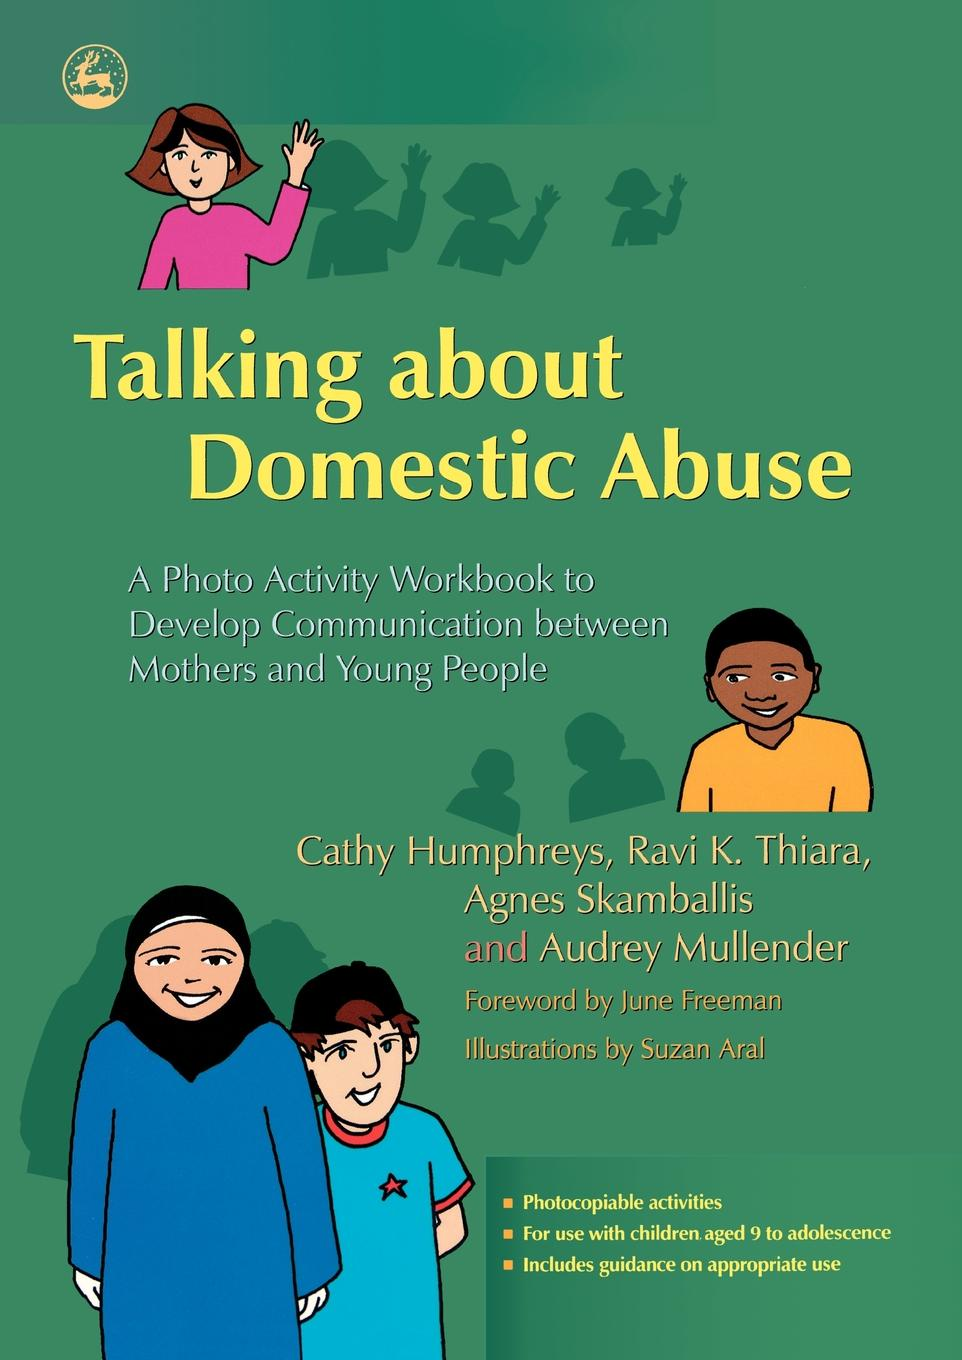 Cathy Humphreys, Ravi K. Thiara, Agnes Skamballis Talking about Domestic Abuse. A Photo Activity Workbook to Develop Communication Between Mothers and Young People paula lytle lifeline to young mothers